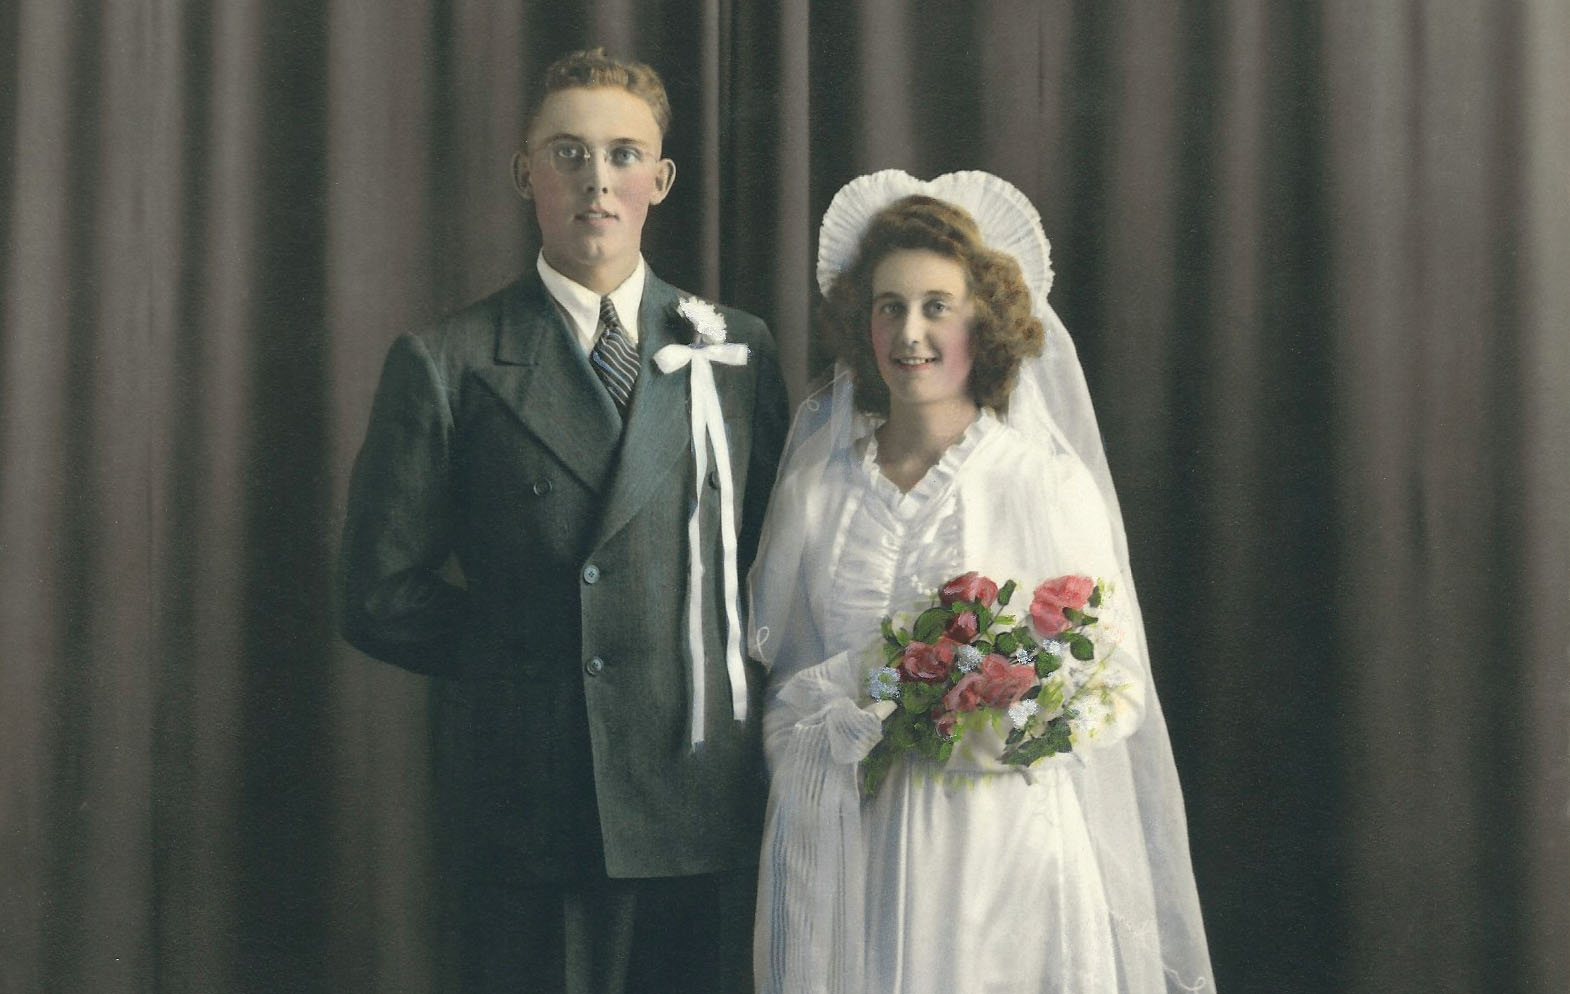 Peter and Marge were wedded in an era when marriages lasted a lifetime. Photos courtesy Shelley Lepp